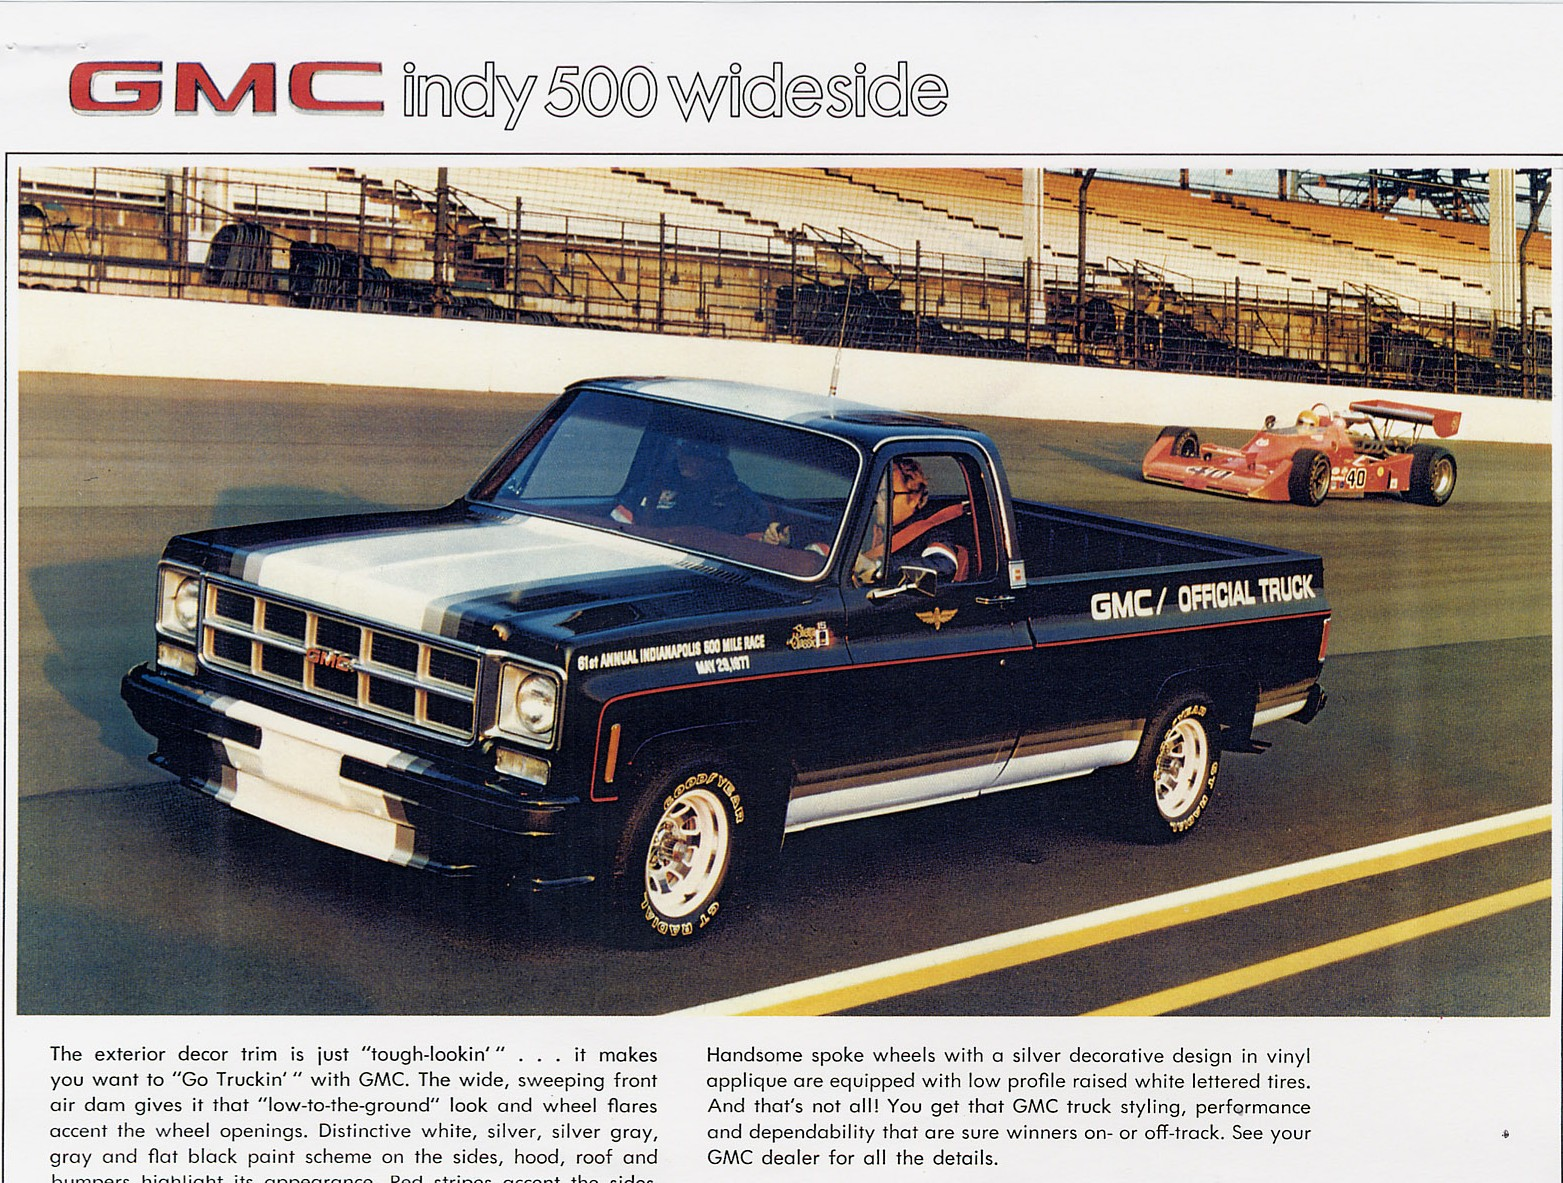 Truck 1977 chevy truck hood : 1977 GMC Indy 500 Wideside Limited Edition Pickup | Sqaurebodies ...